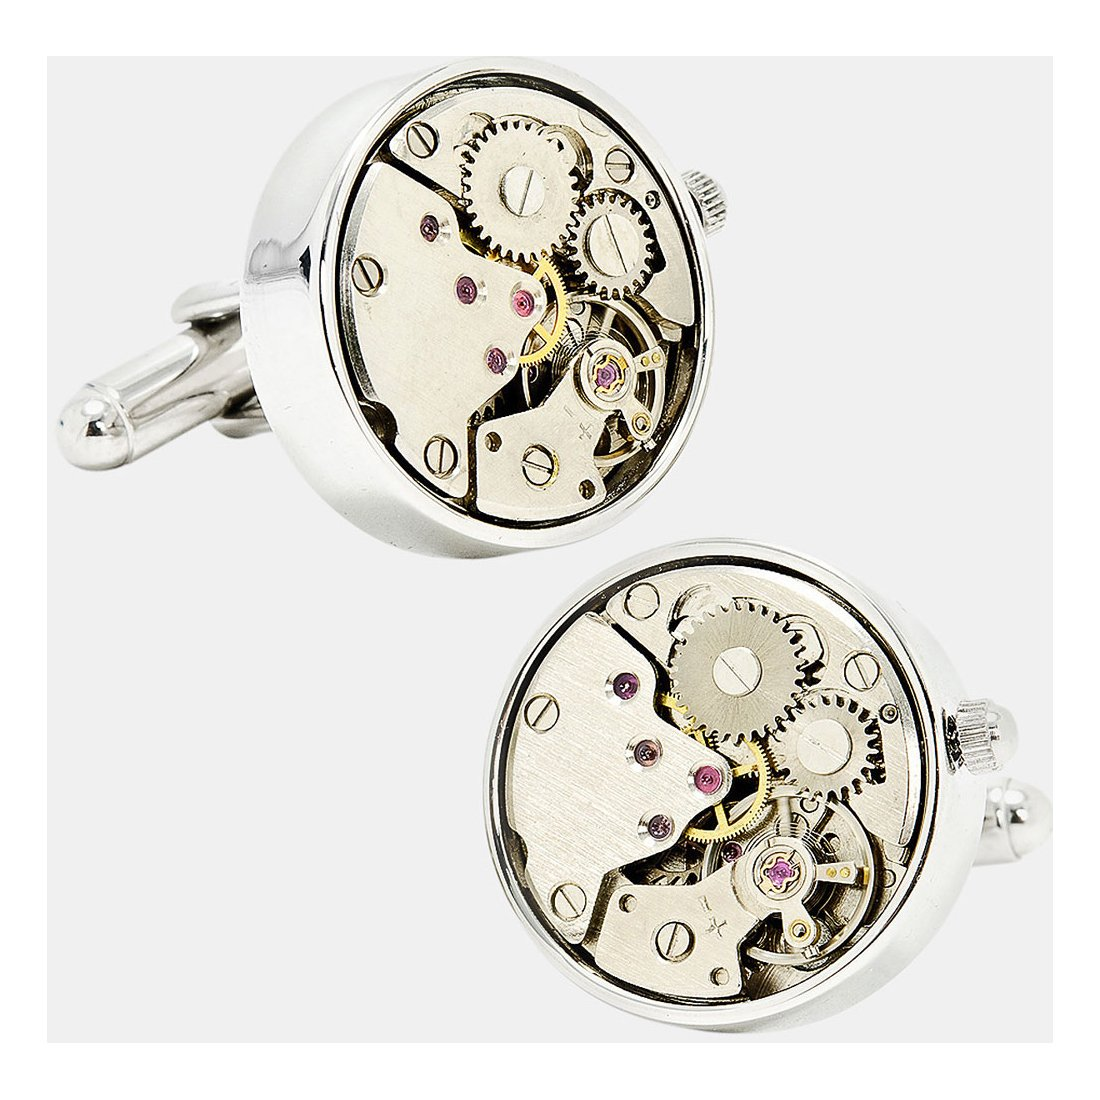 Real Working Watch Movements Cufflinks Functioning Steampunk Cuff-links with Glass Cover (silver-glass1)